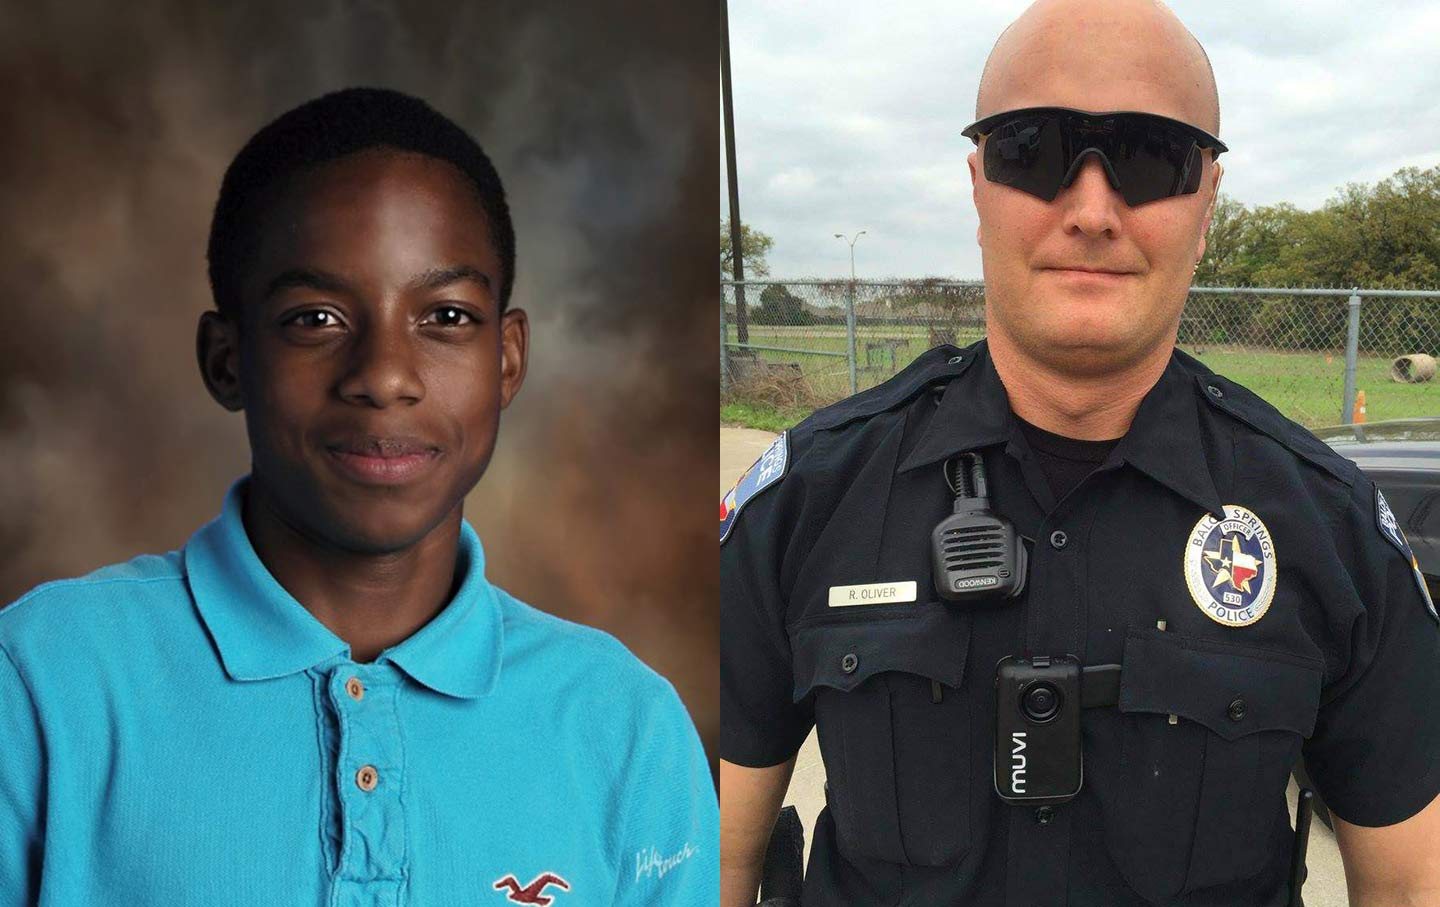 another black boy was killed by police will justice be done this